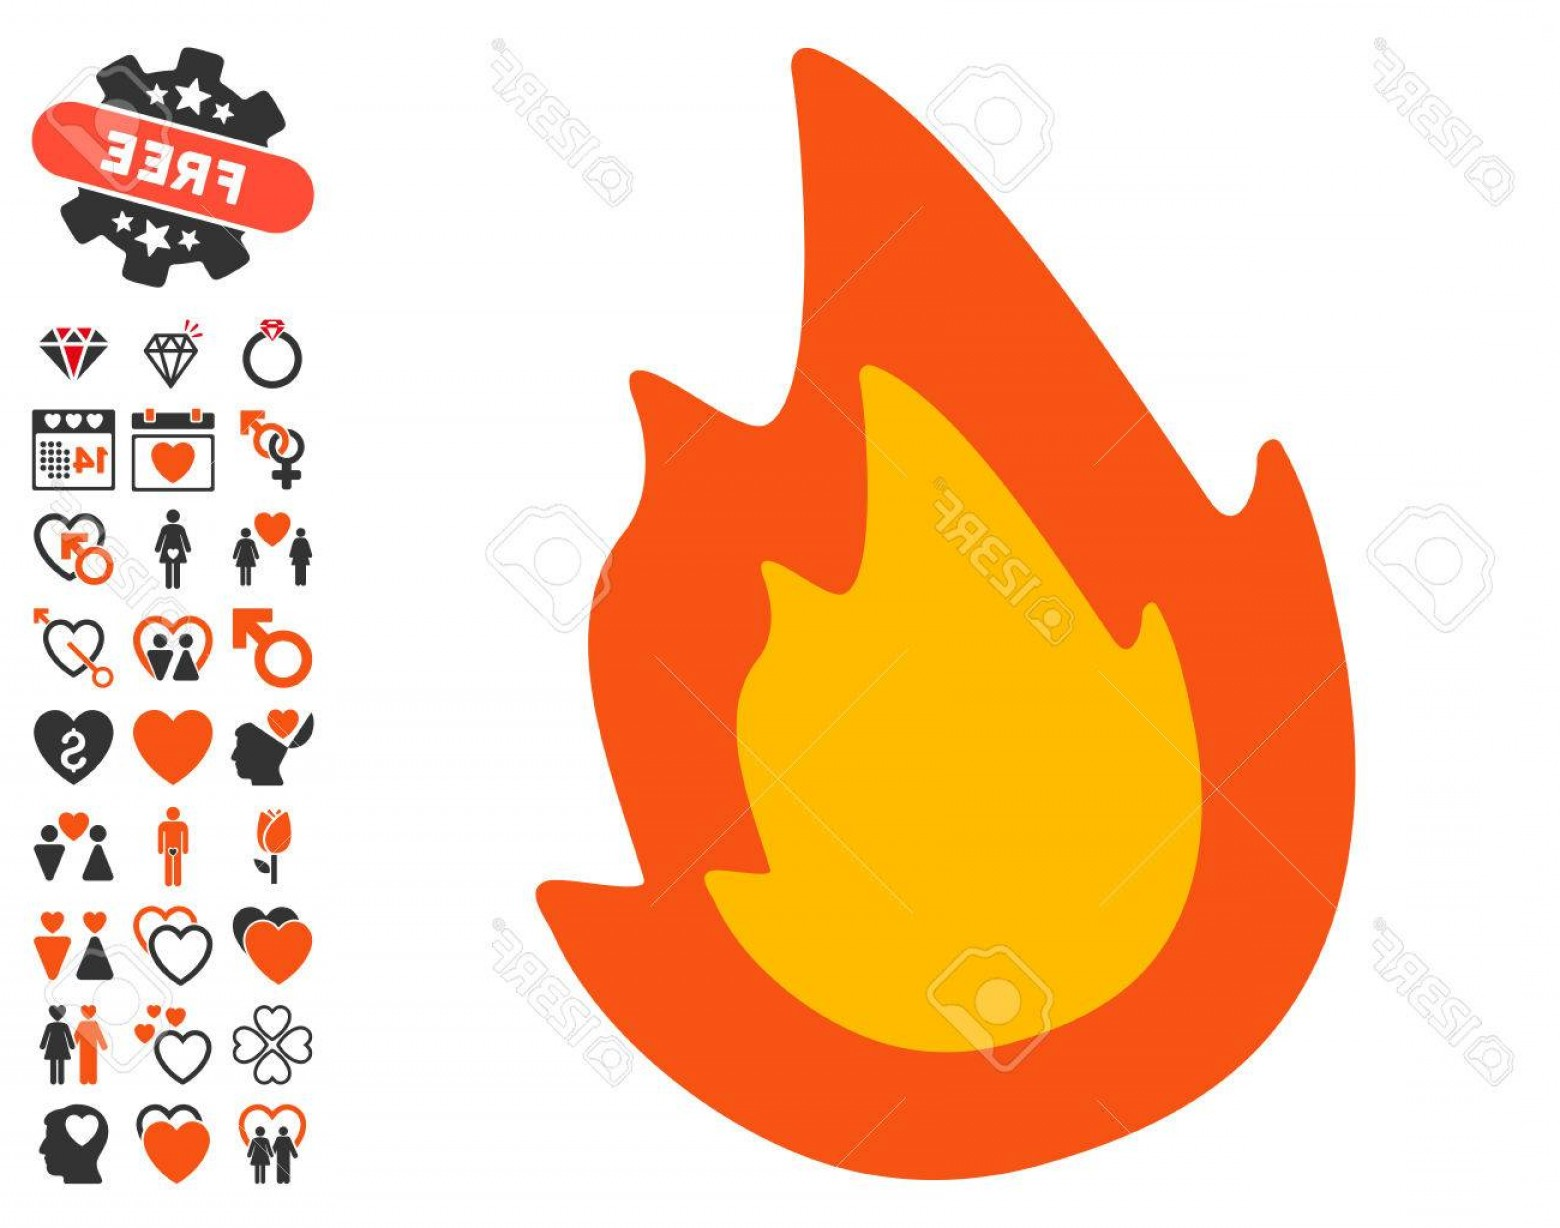 Fire Clip Art Vector: Photostock Vector Fire Pictograph With Bonus Lovely Clip Art Vector Illustration Style Is Flat Iconic Elements For Web